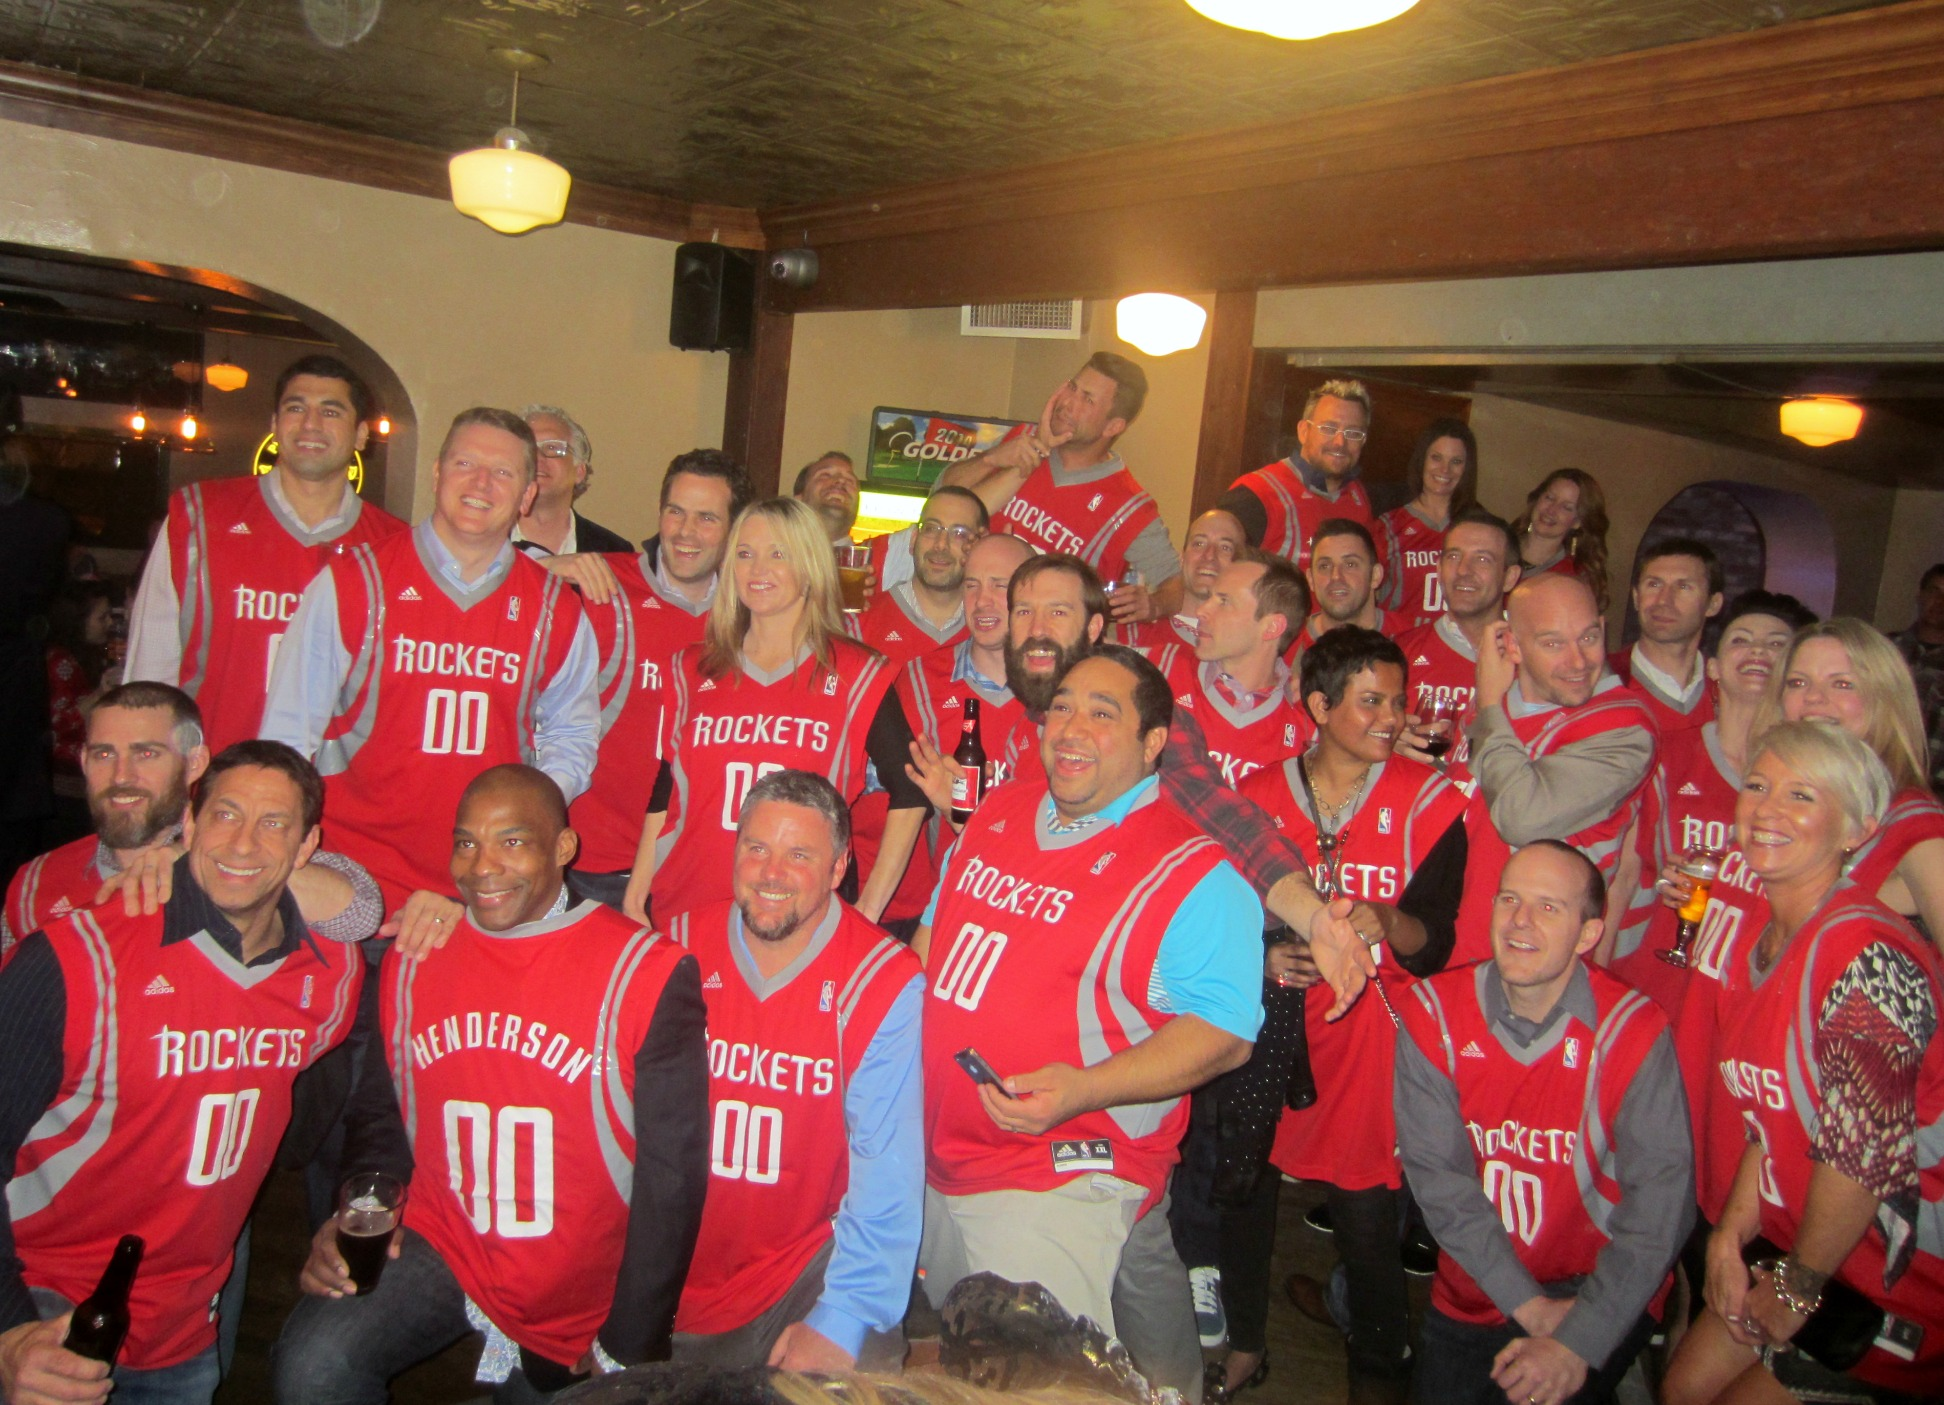 wedding party in rockets jerseys